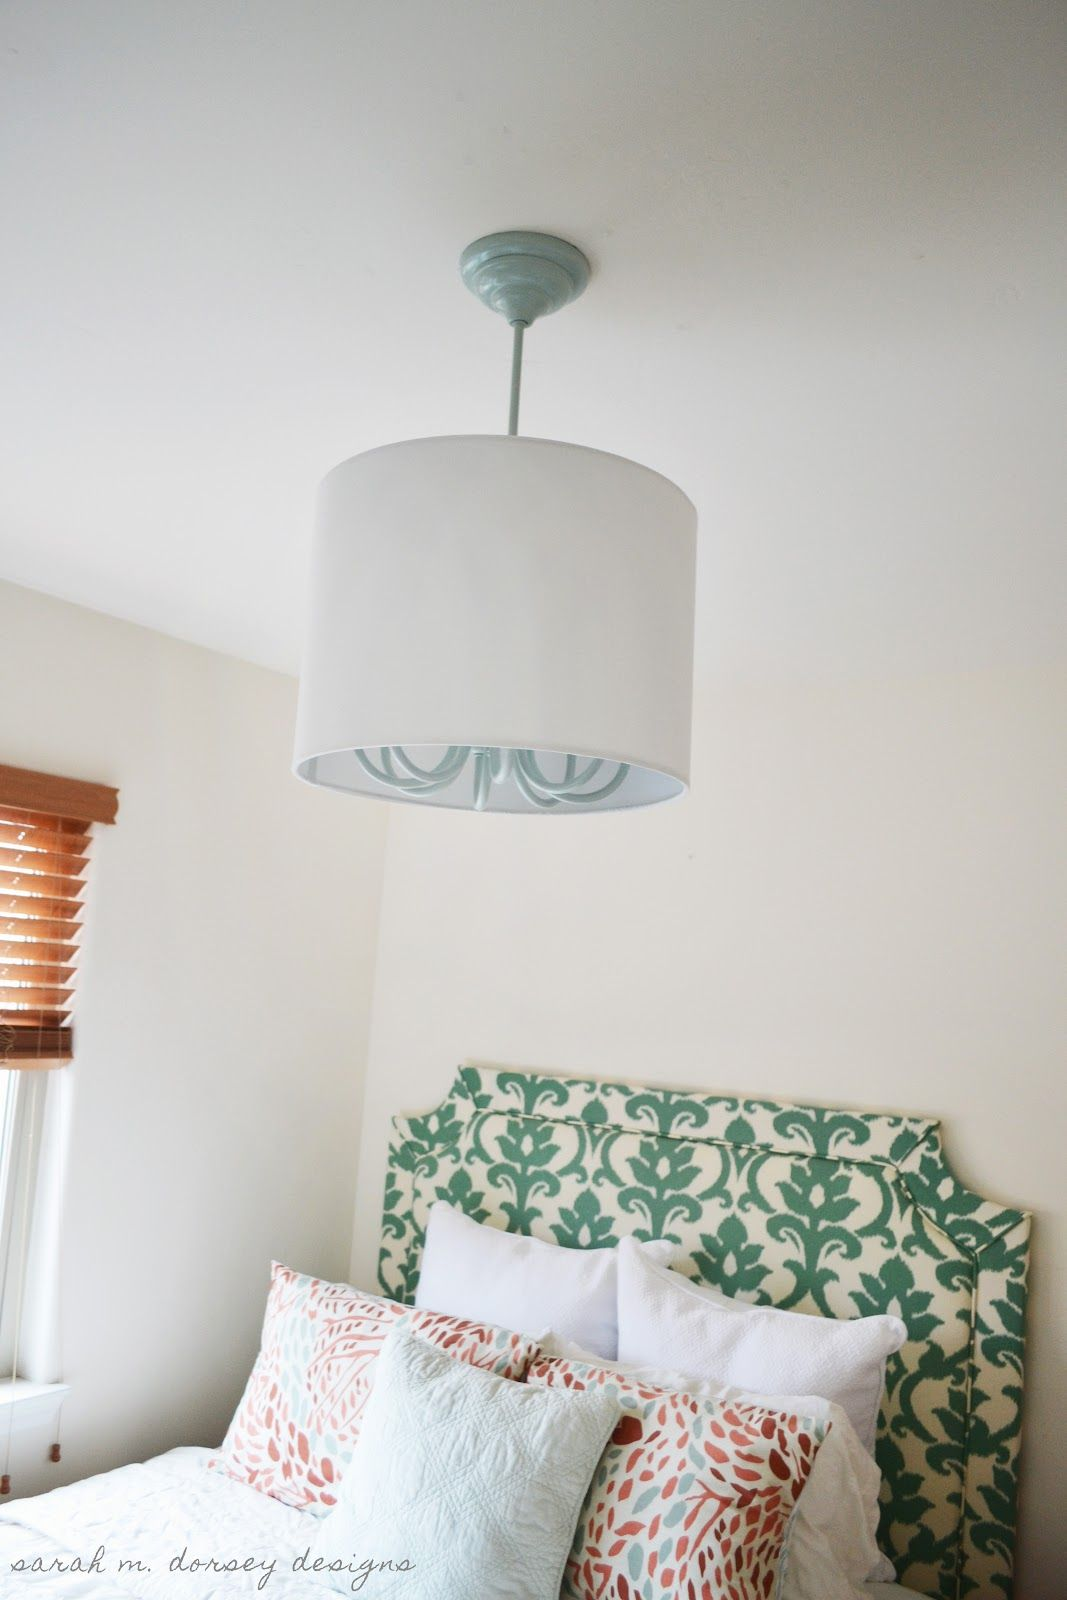 Today I thought I would share with you how we made the drum shade  chandelier .